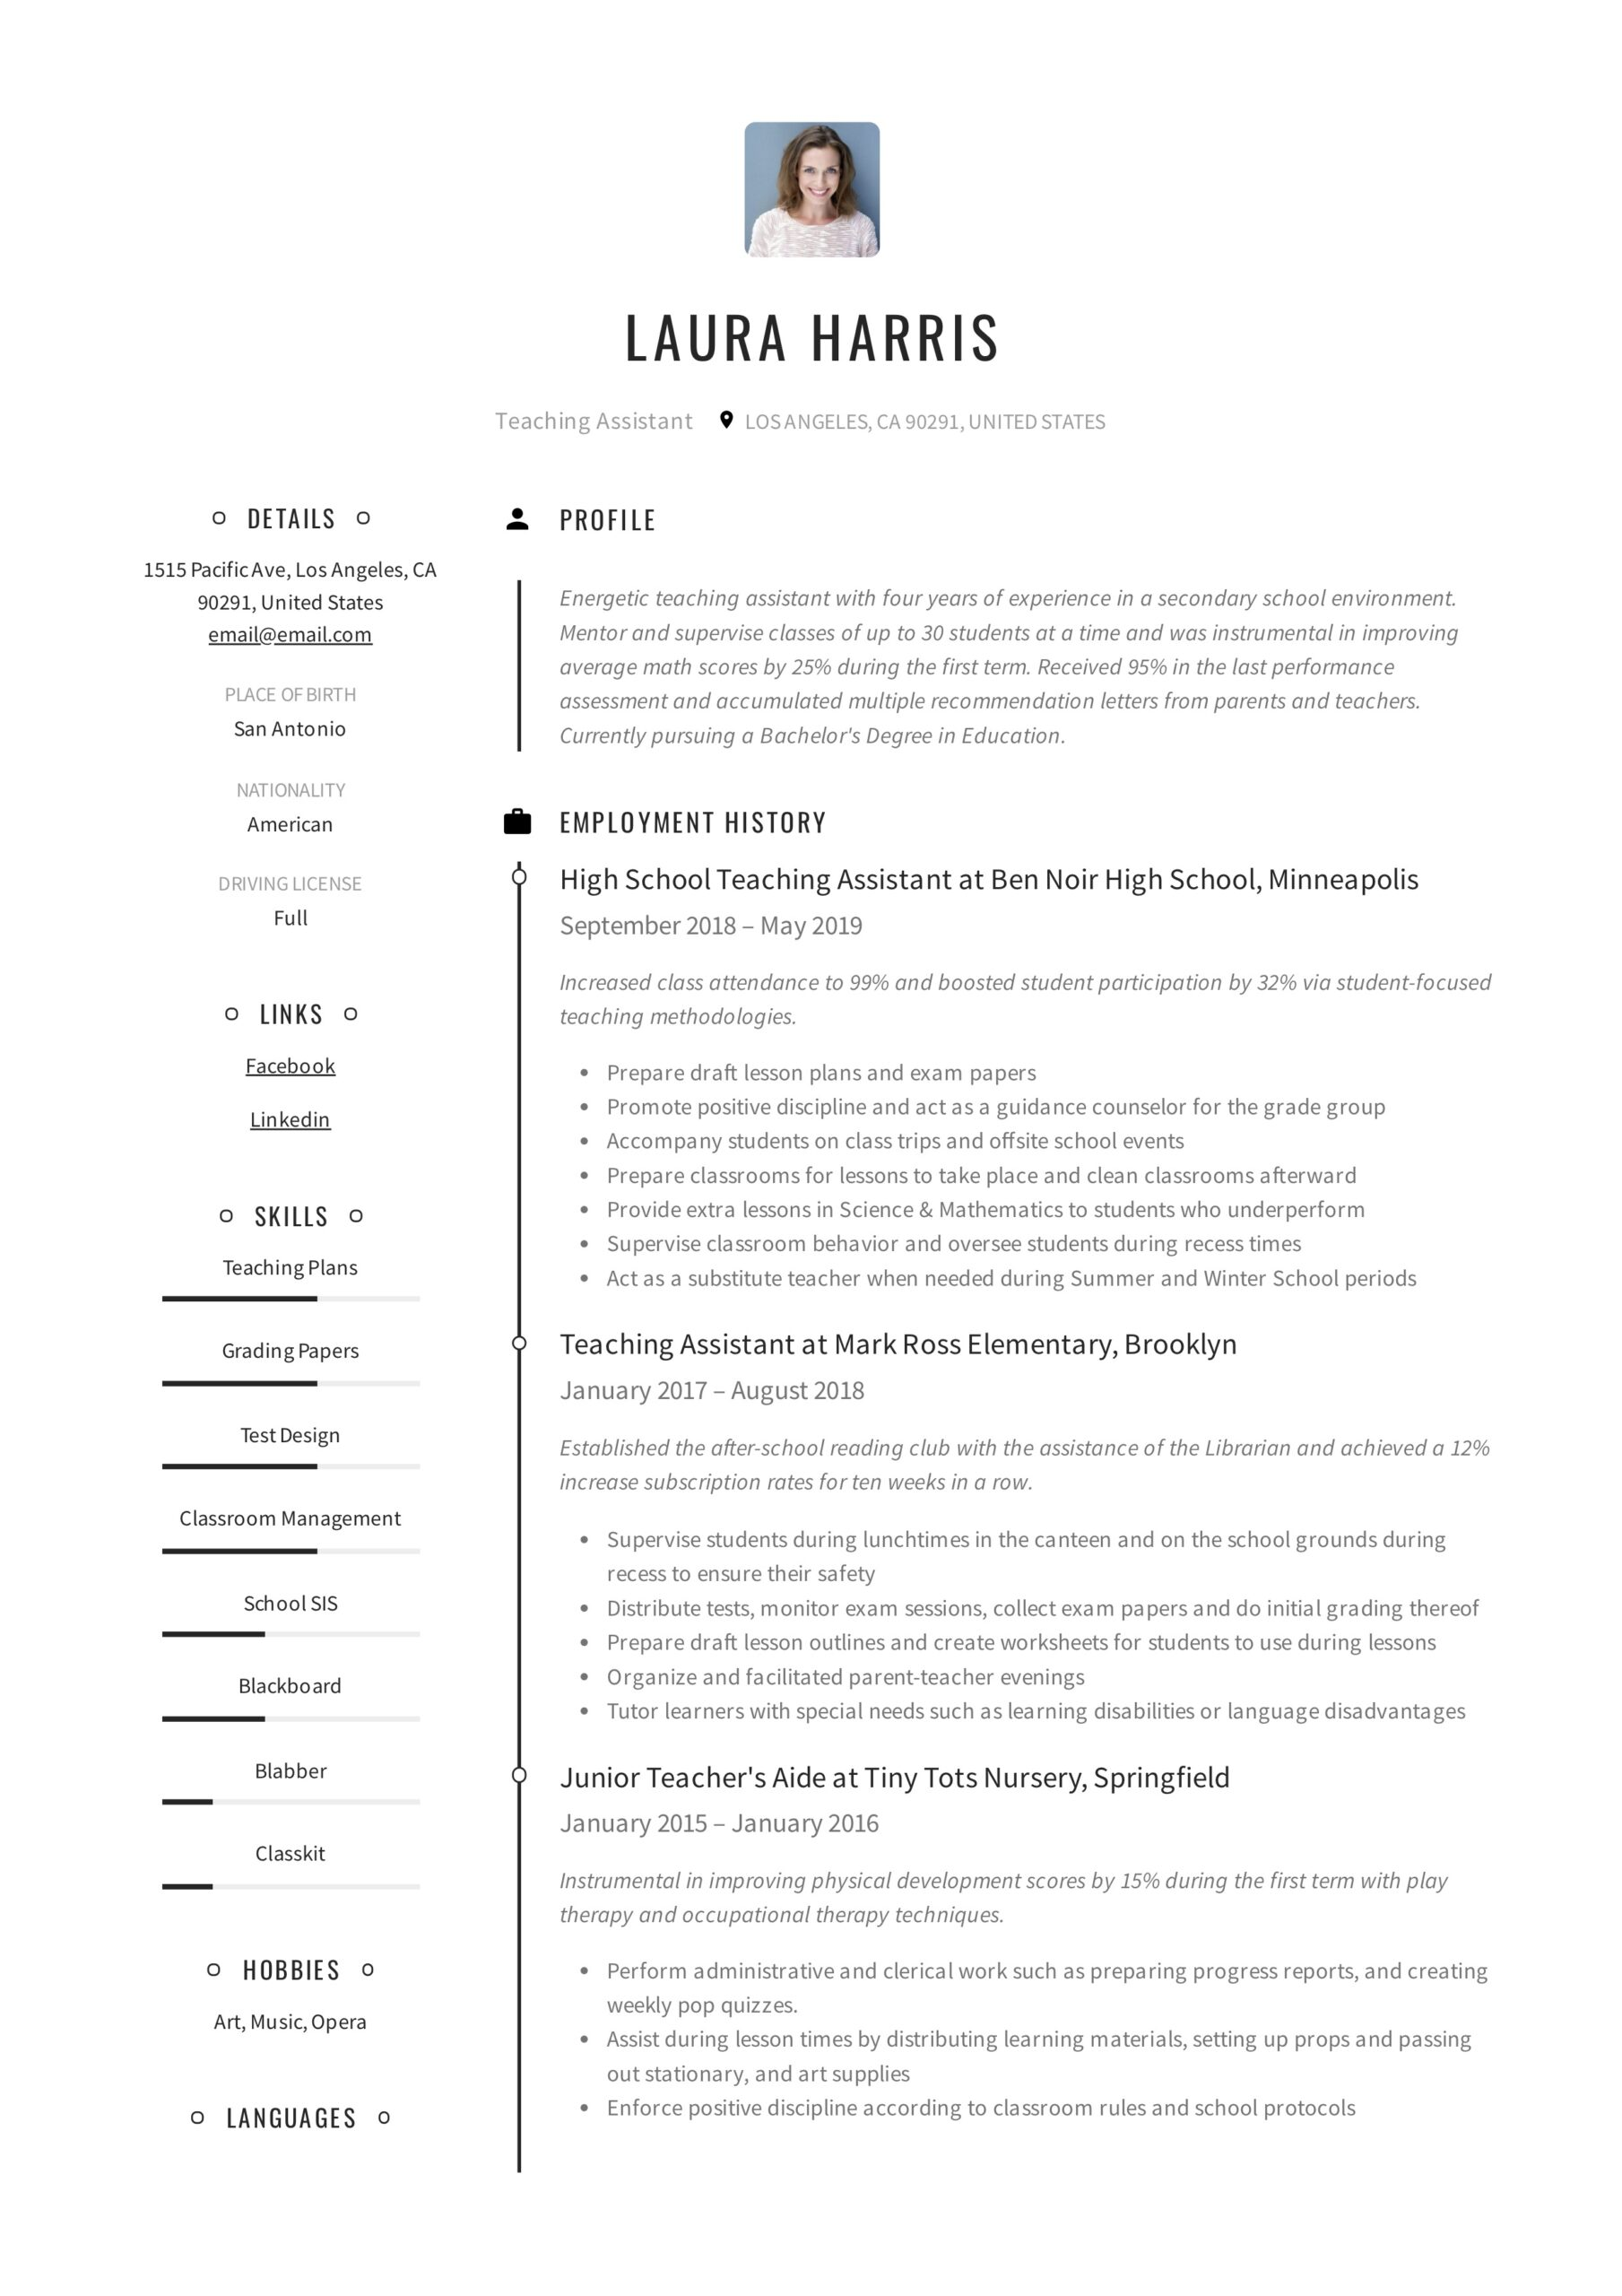 teaching assistant resume writing guide templates pdf paraprofessional summary examples Resume Paraprofessional Resume Summary Examples